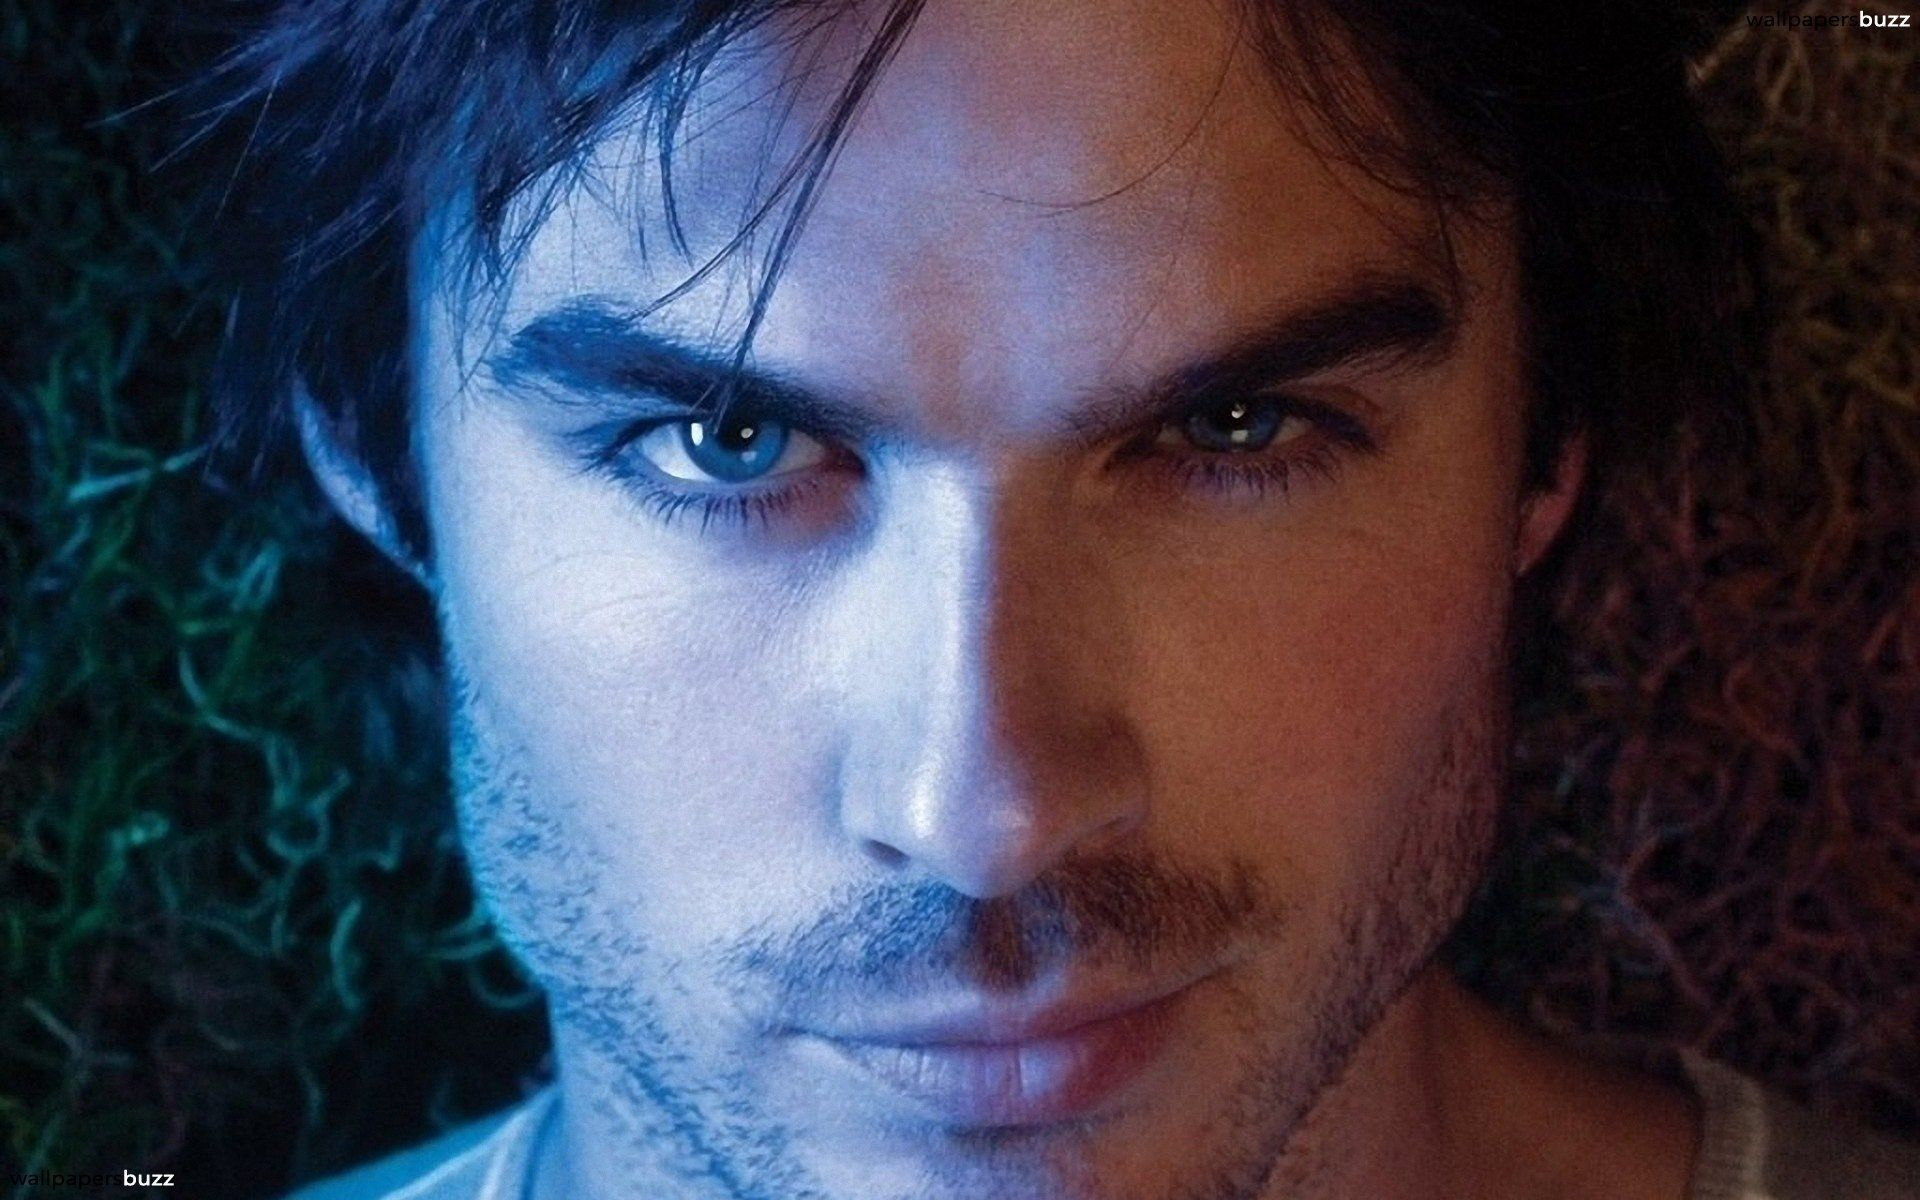 79 Ian Somerhalder Wallpapers On Wallpaperplay Ian Somerhalder Bad Boys Healthy Shopping